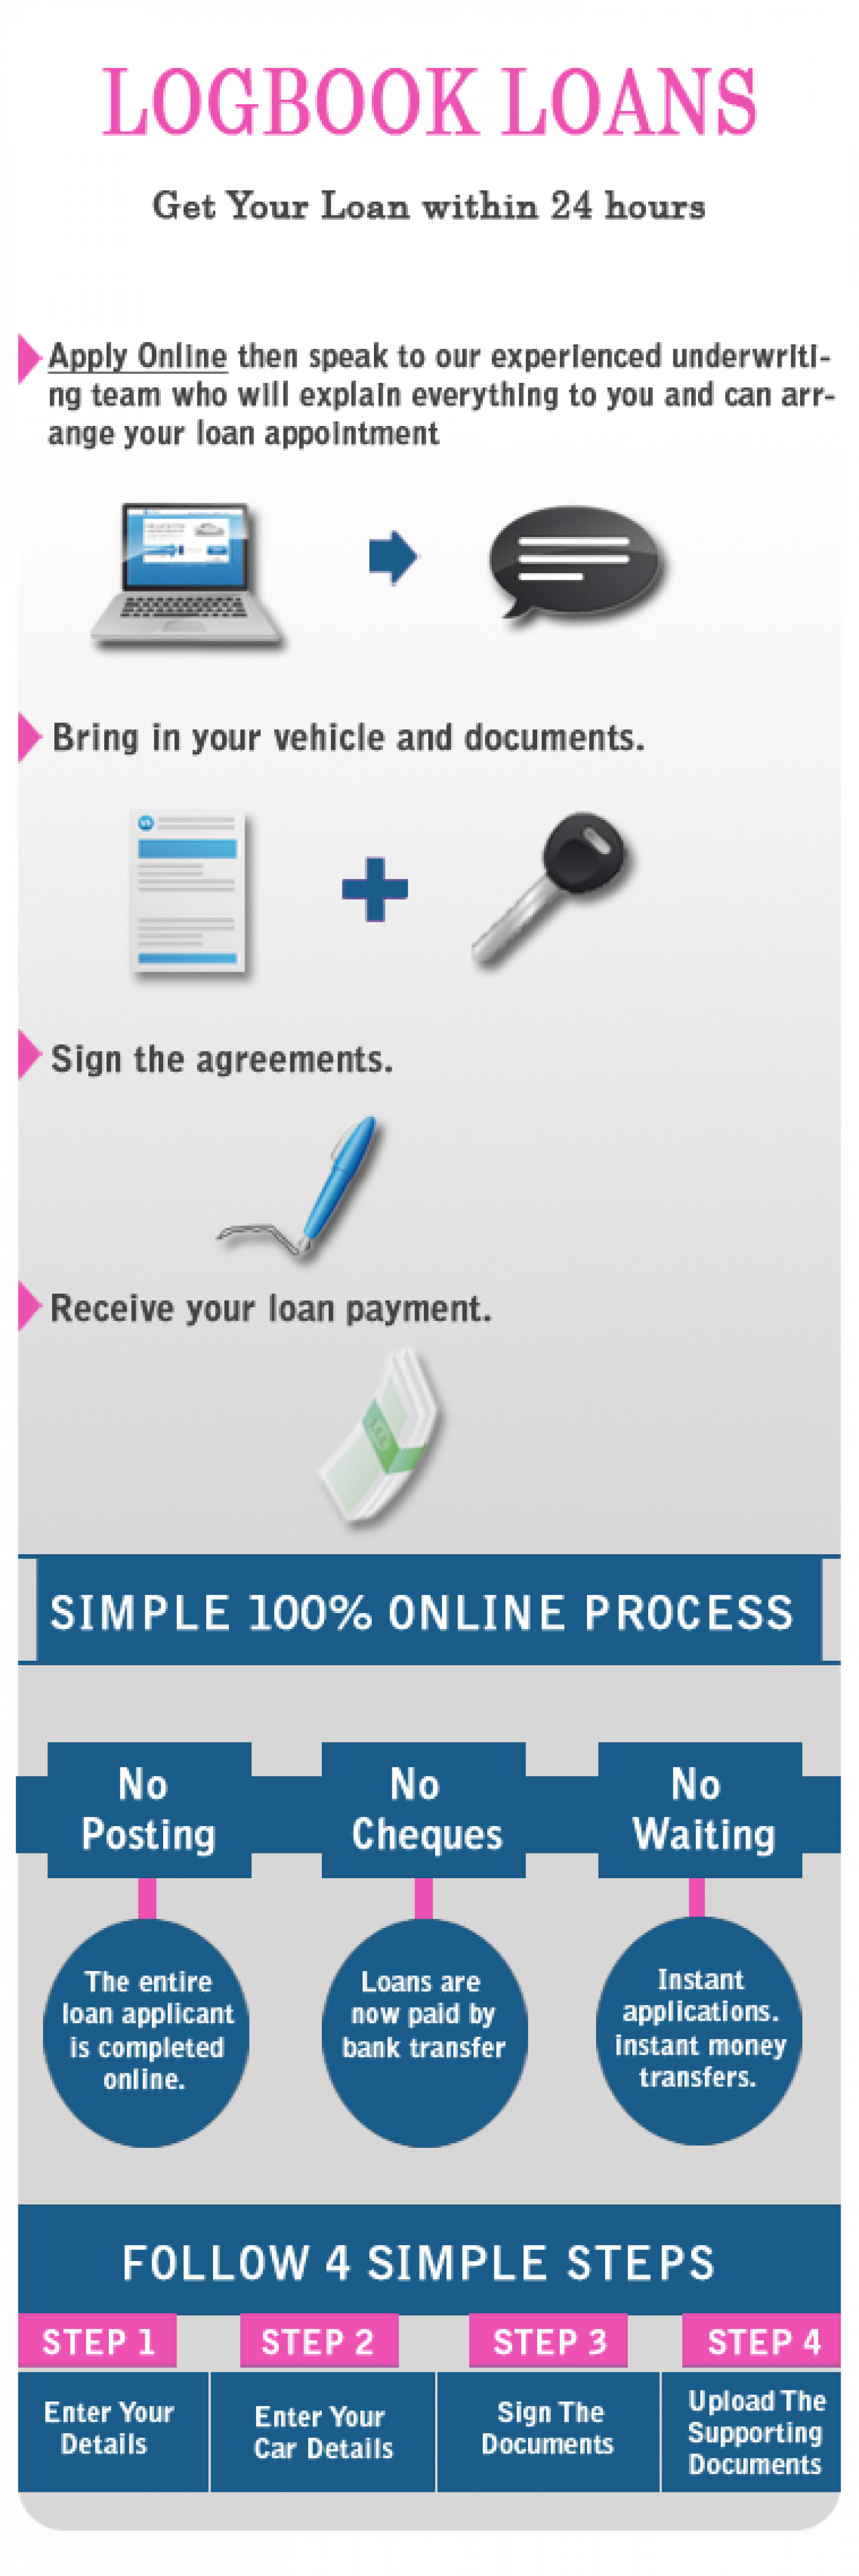 Get Logbook Loans in 24 Hours Infographic